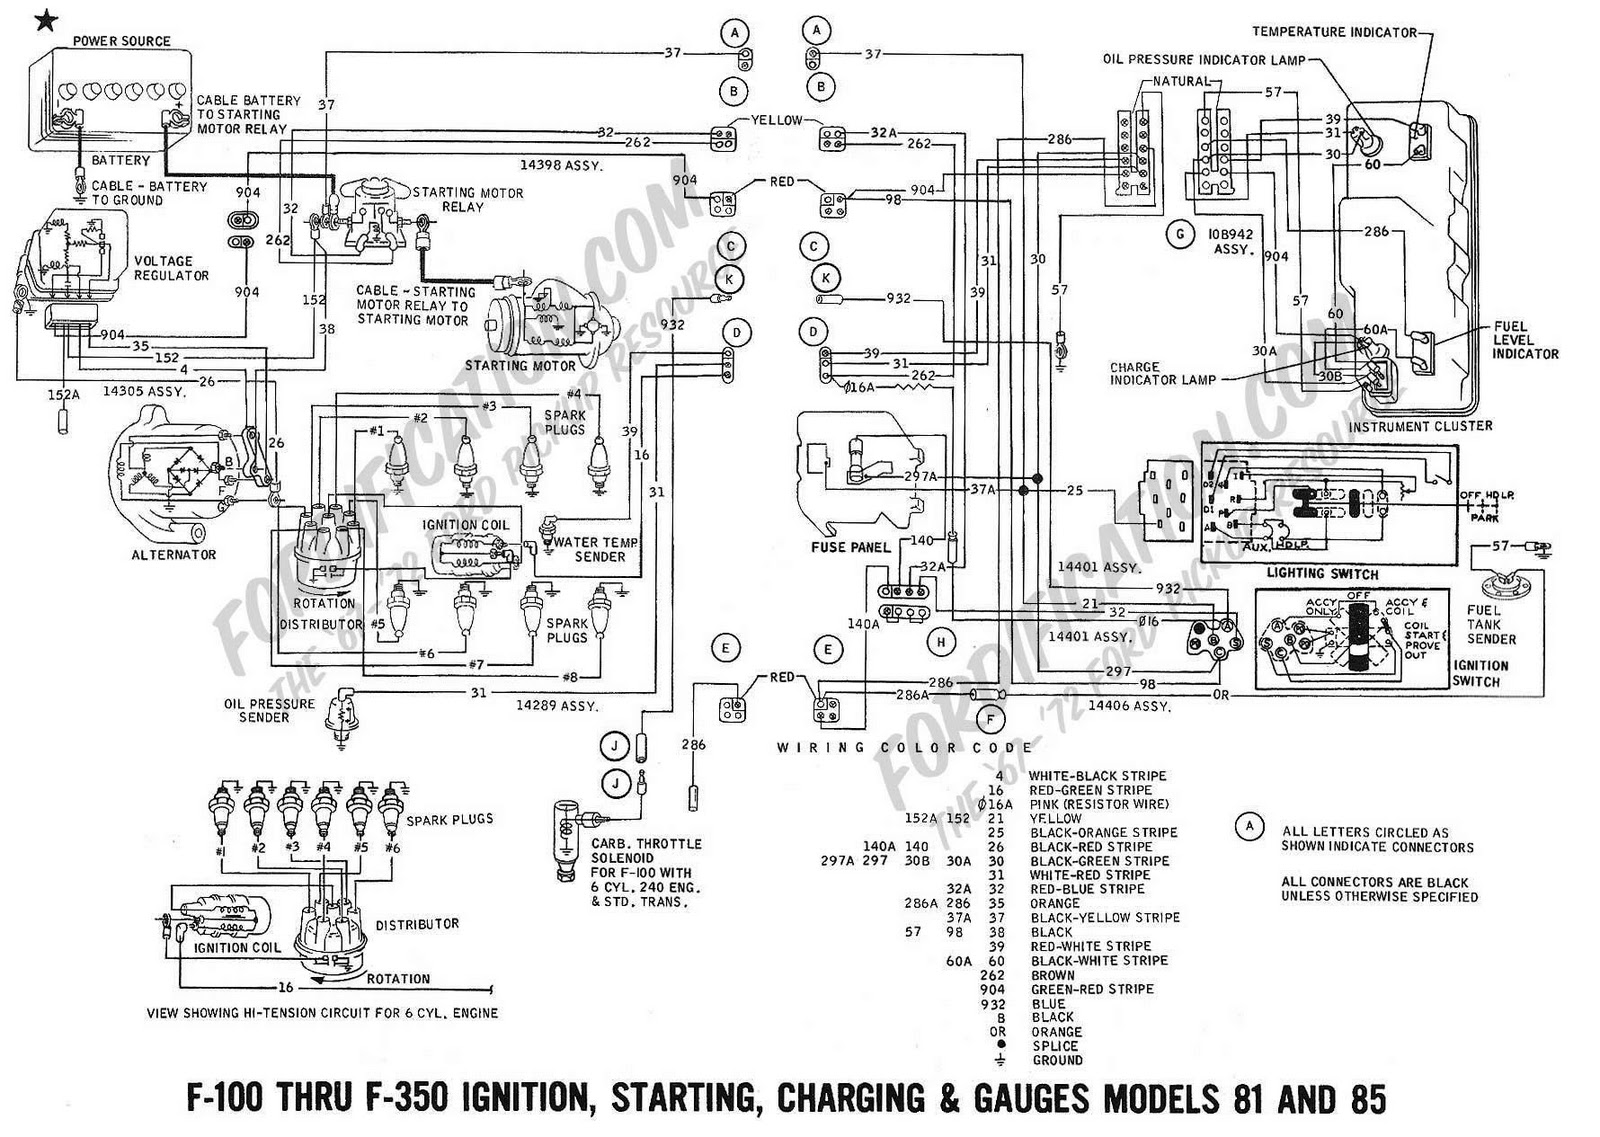 1969 Ford F100 F350 Ignition%2C Starting%2C Charging%2C And Gauges Wiring Diagram 2008 ford mustang wiring schematics manual e books